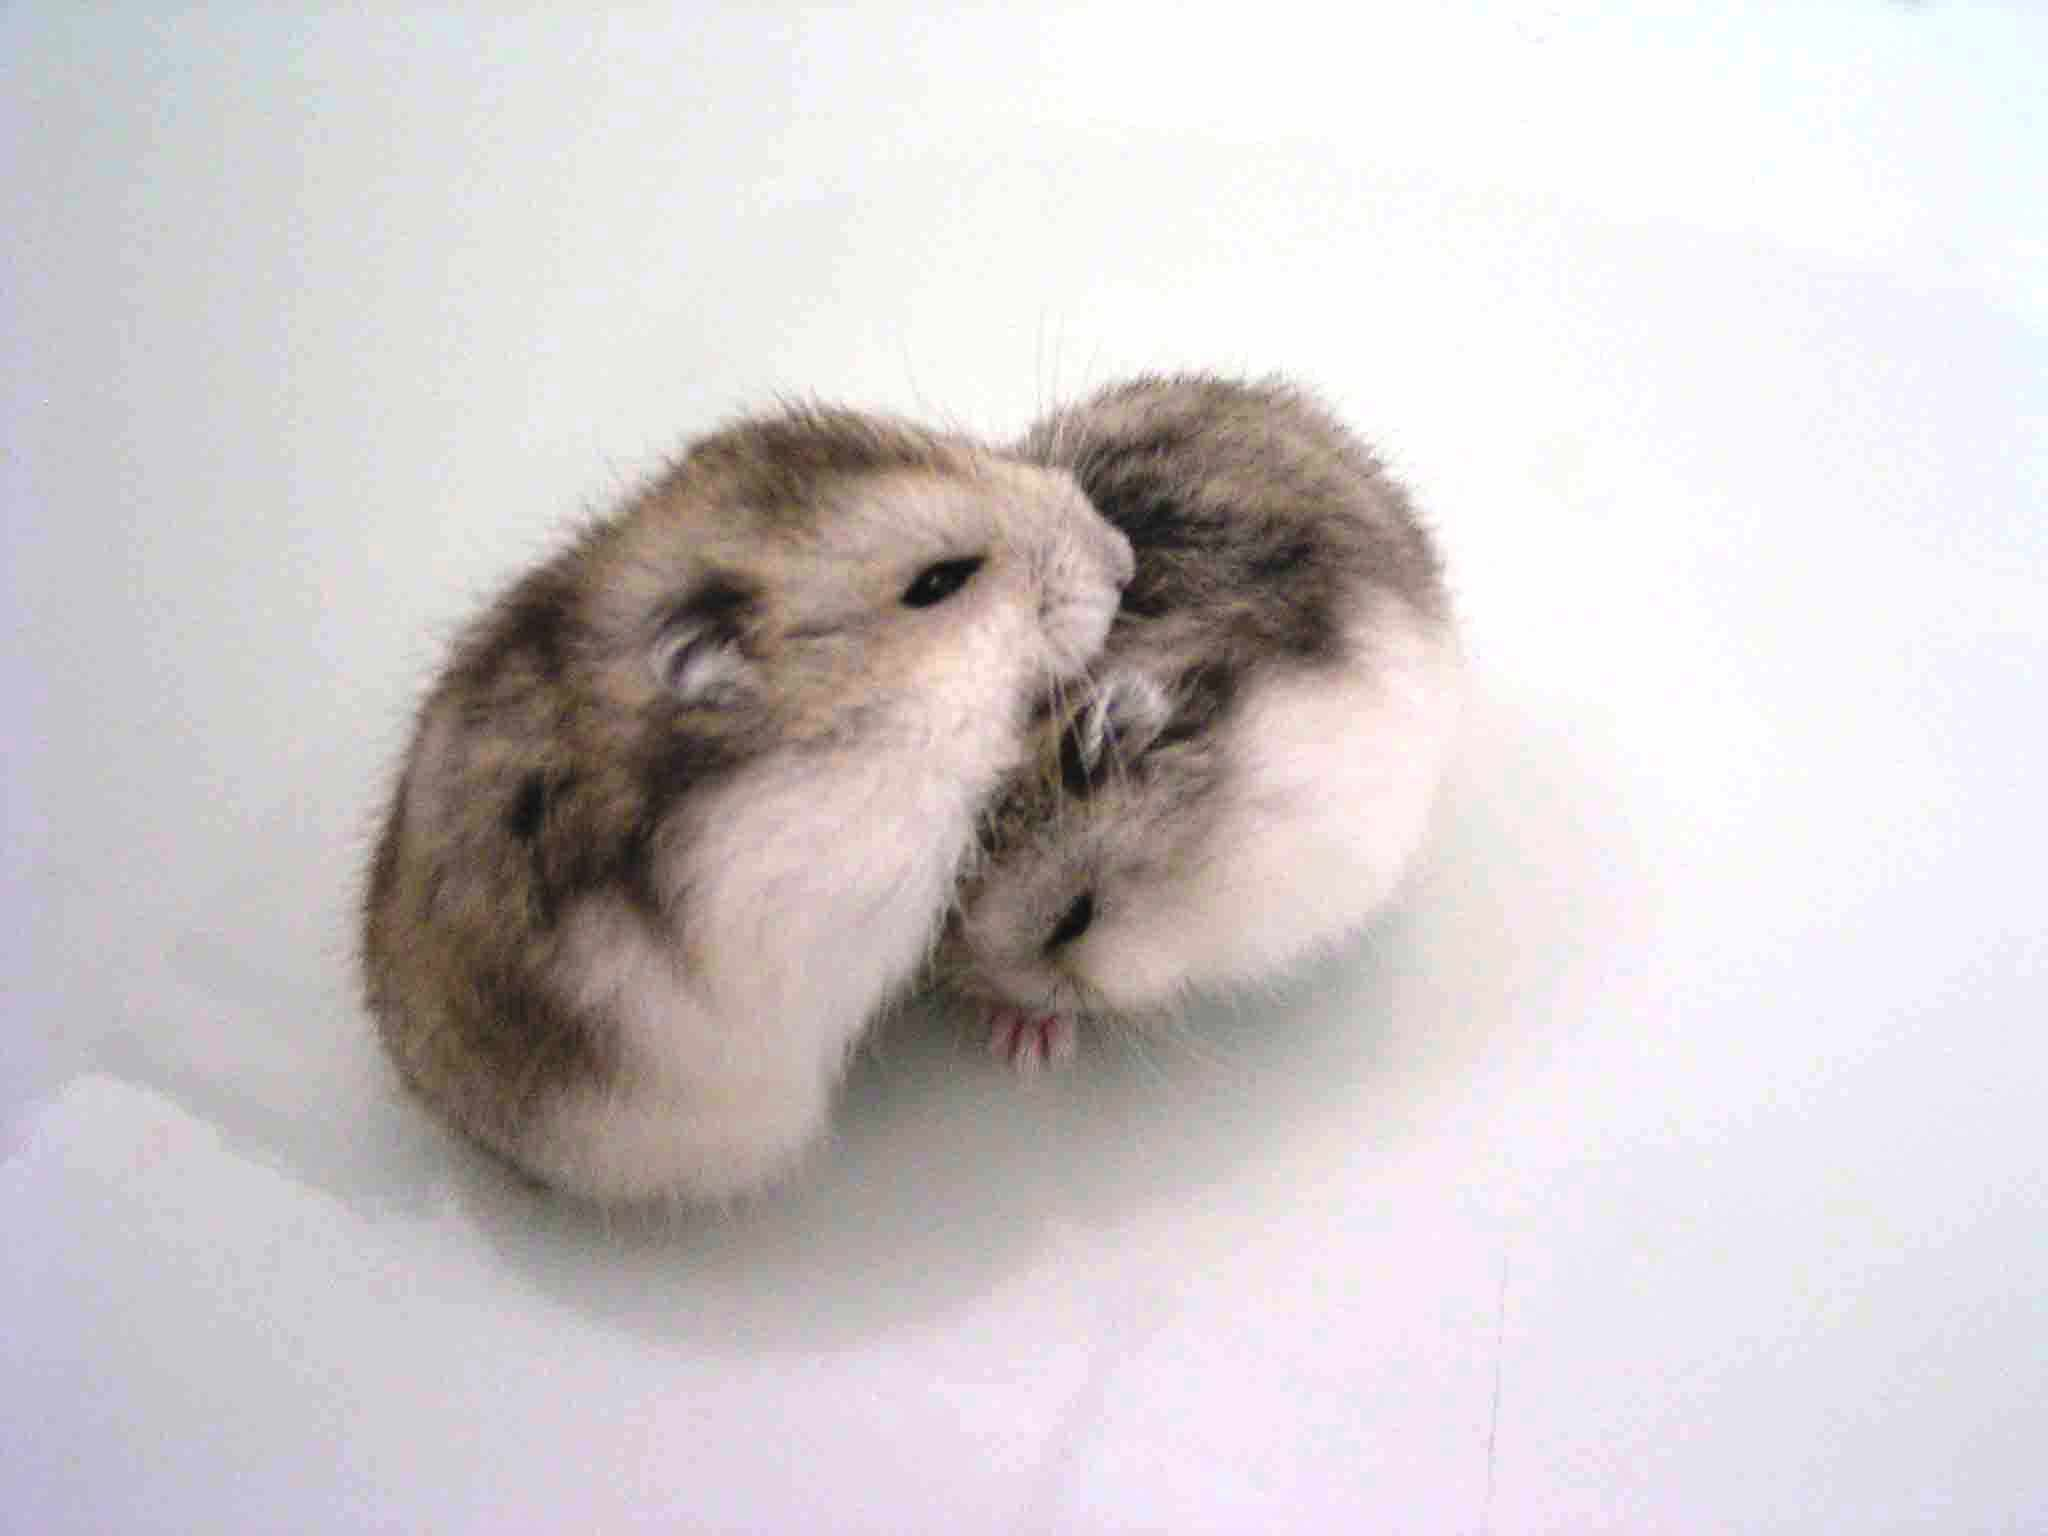 hamster hd wallpaper | wallpapers | pinterest | hd wallpaper